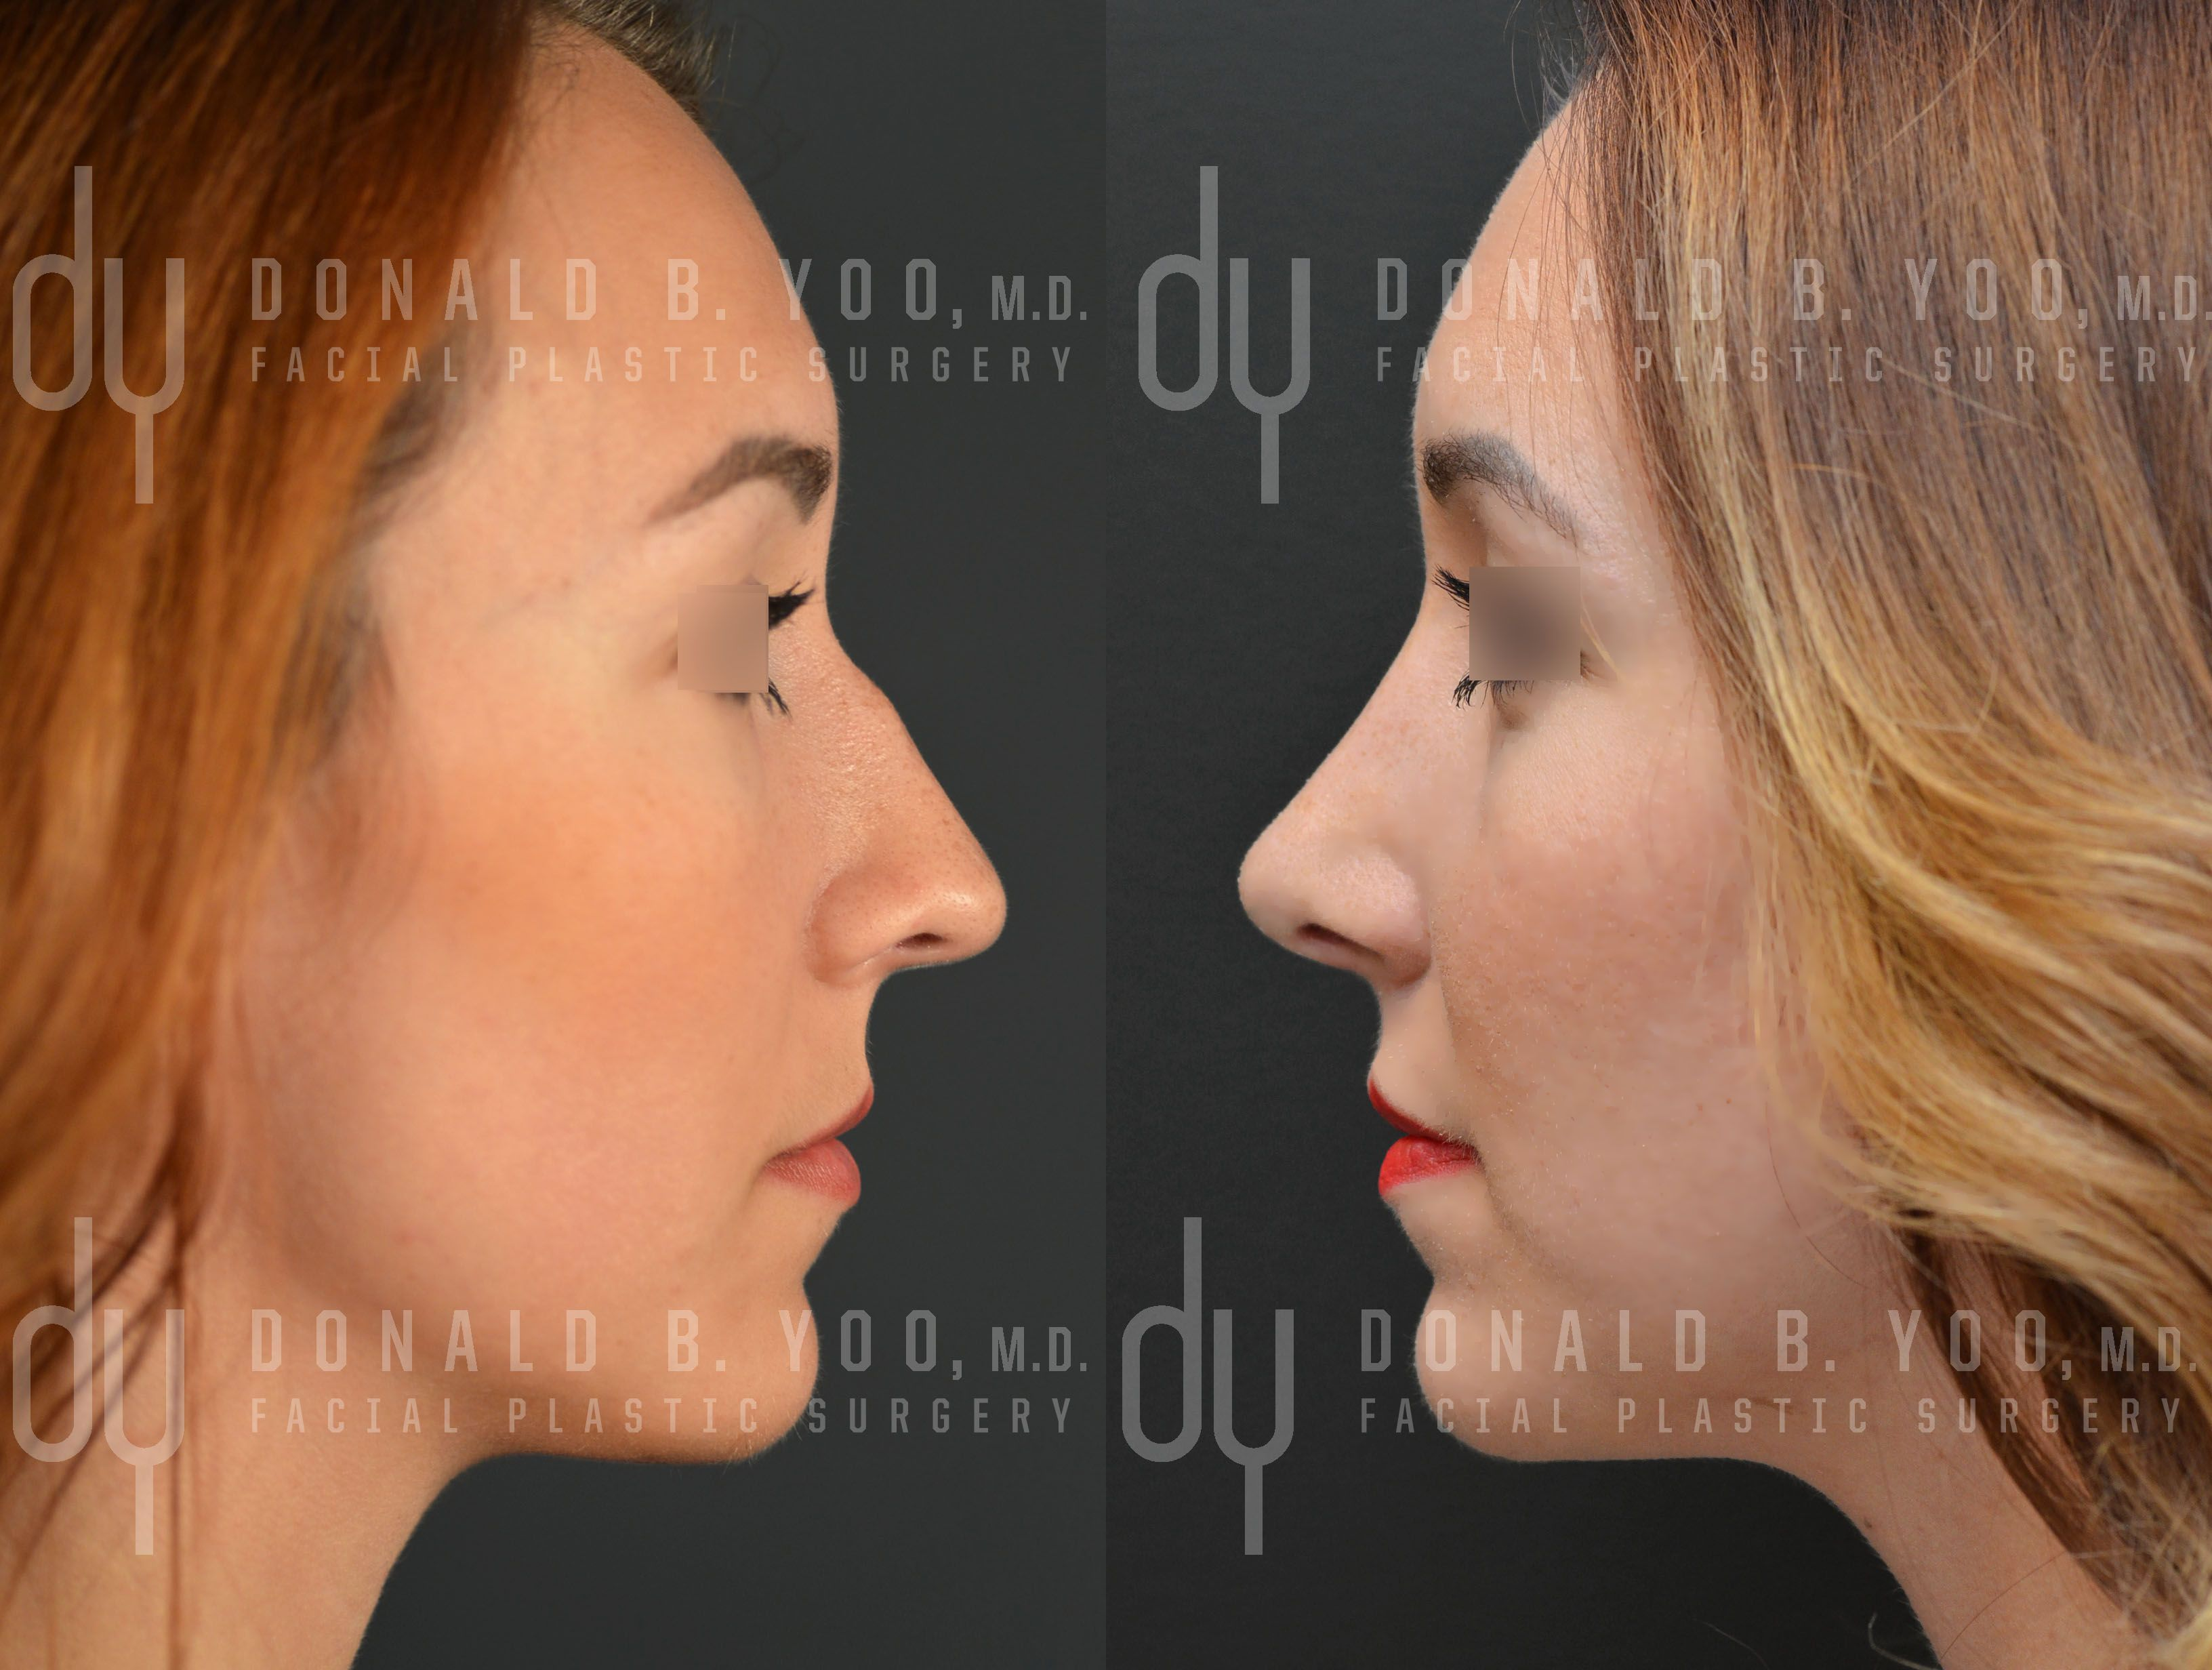 Before and After Primary Open Rhinoplasty and Septoplasty